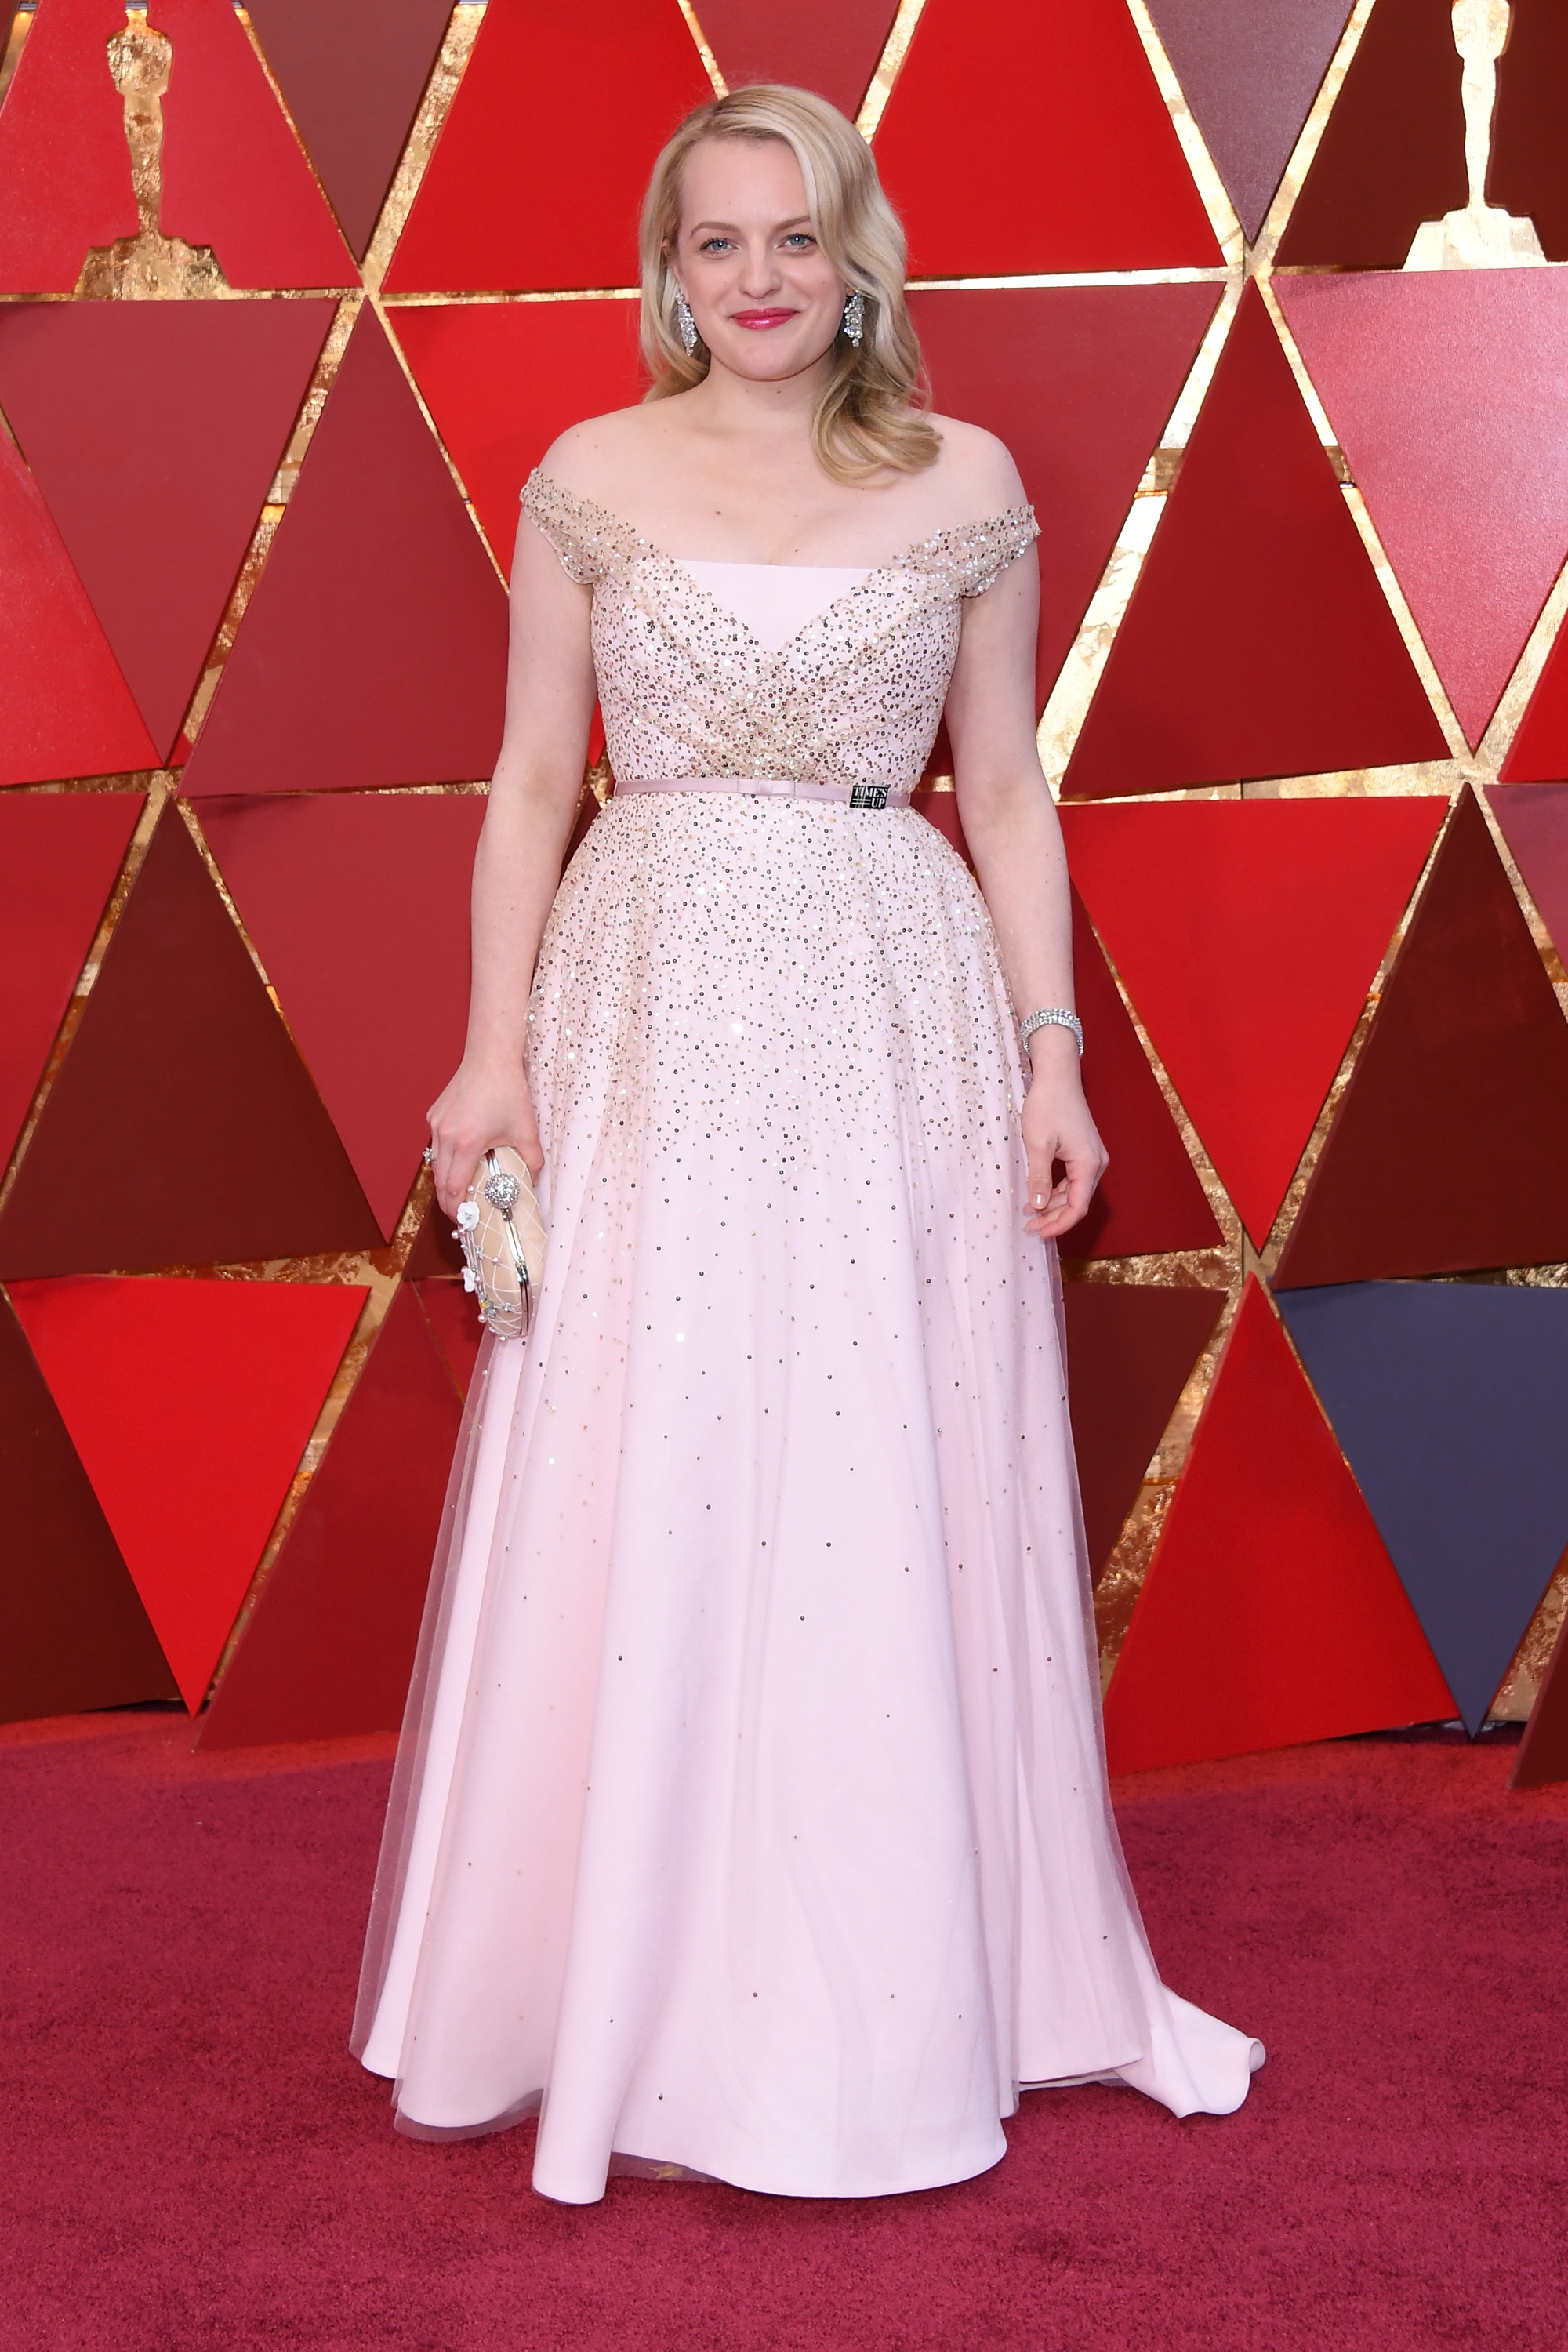 HOLLYWOOD, CA - MARCH 04:  Elizabeth Moss attends the 90th Annual Academy Awards at Hollywood & Highland Center on March 4, 2018 in Hollywood, California.  (Photo by Kevork Djansezian/Getty Images)